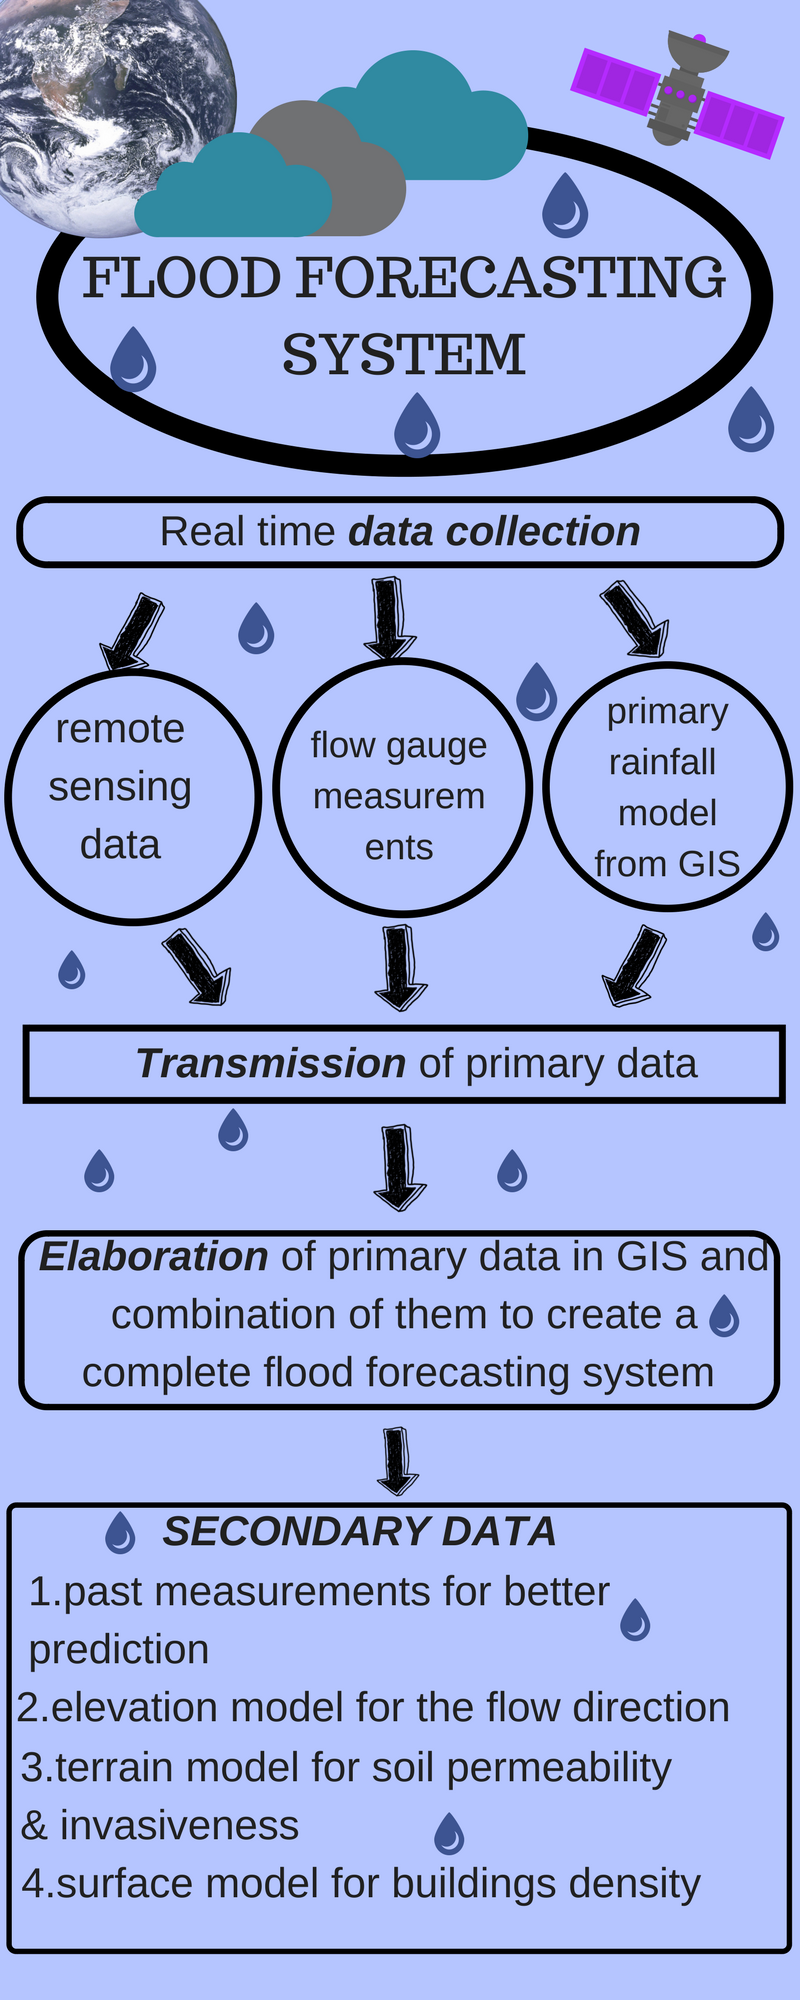 """""""TOOLS"""" USED TO DEVELOP A FLOOD FORECASTING SYSTEM"""